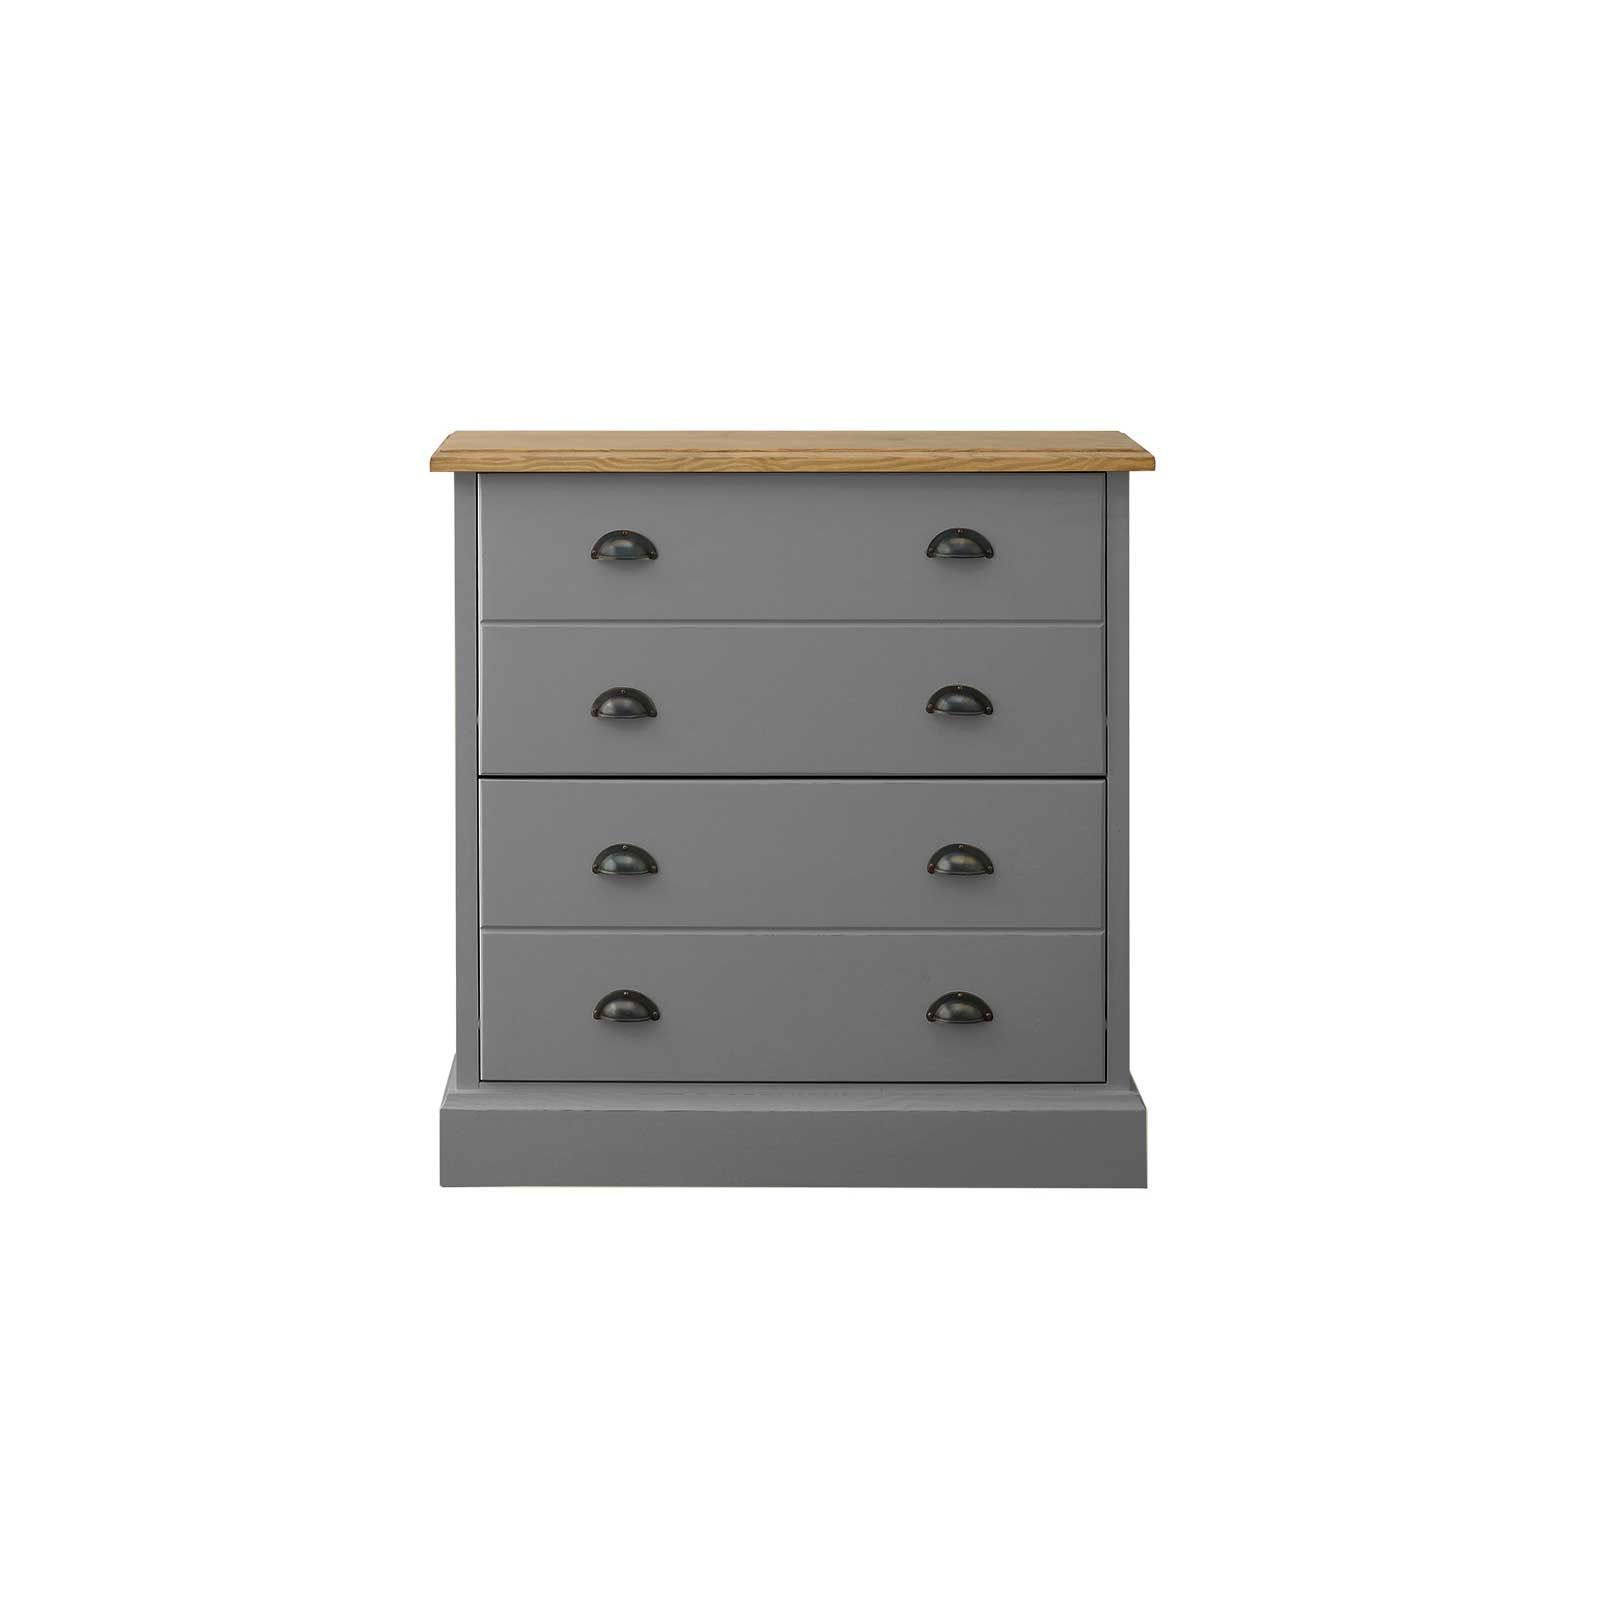 Soho Dark Grey Painted Small Shoe Rack_1